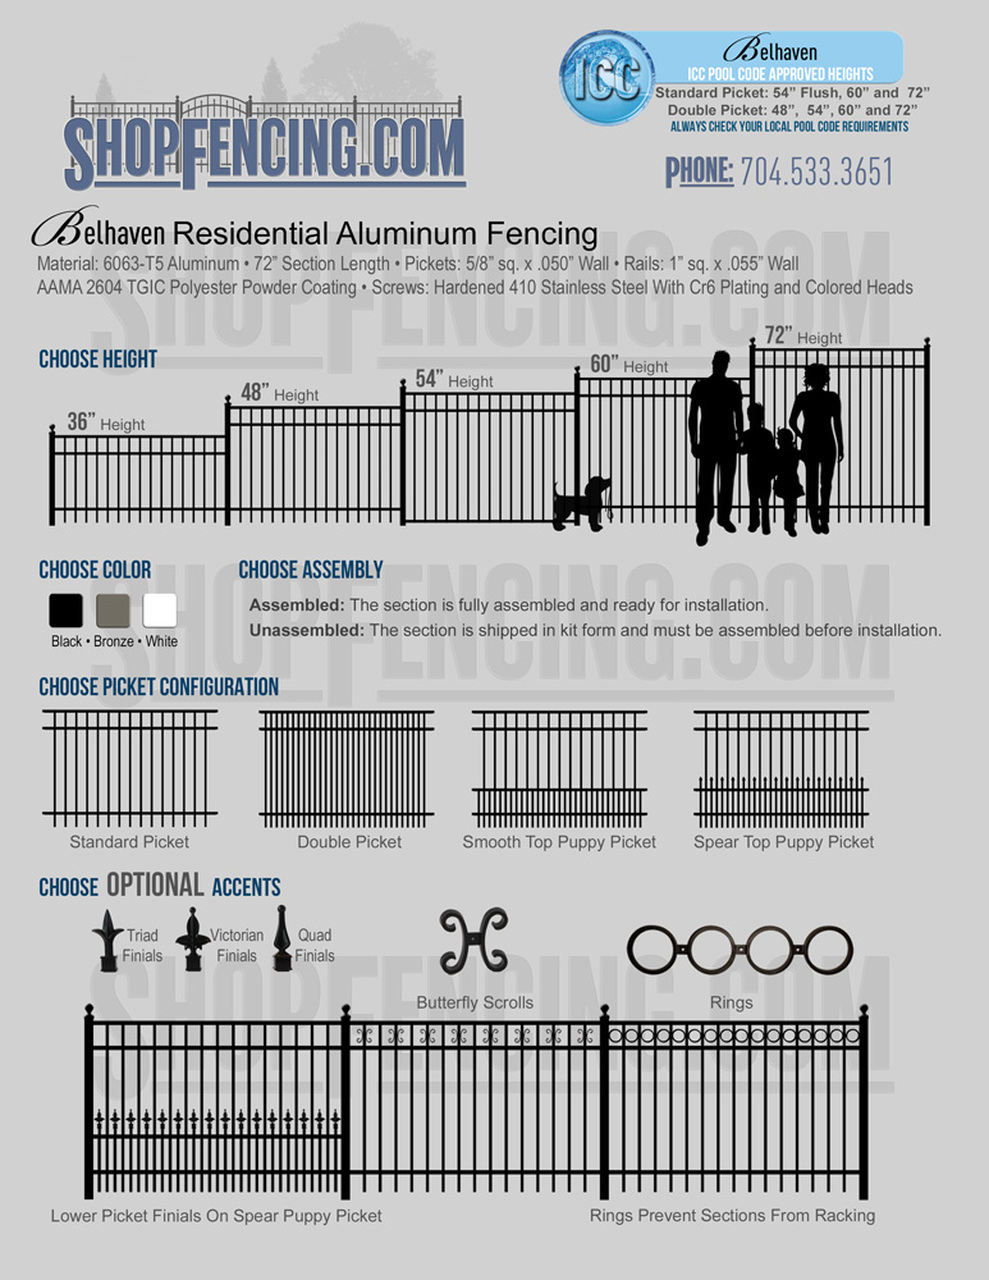 Belhaven Residential Aluminum Fencing From ShopFencing.com